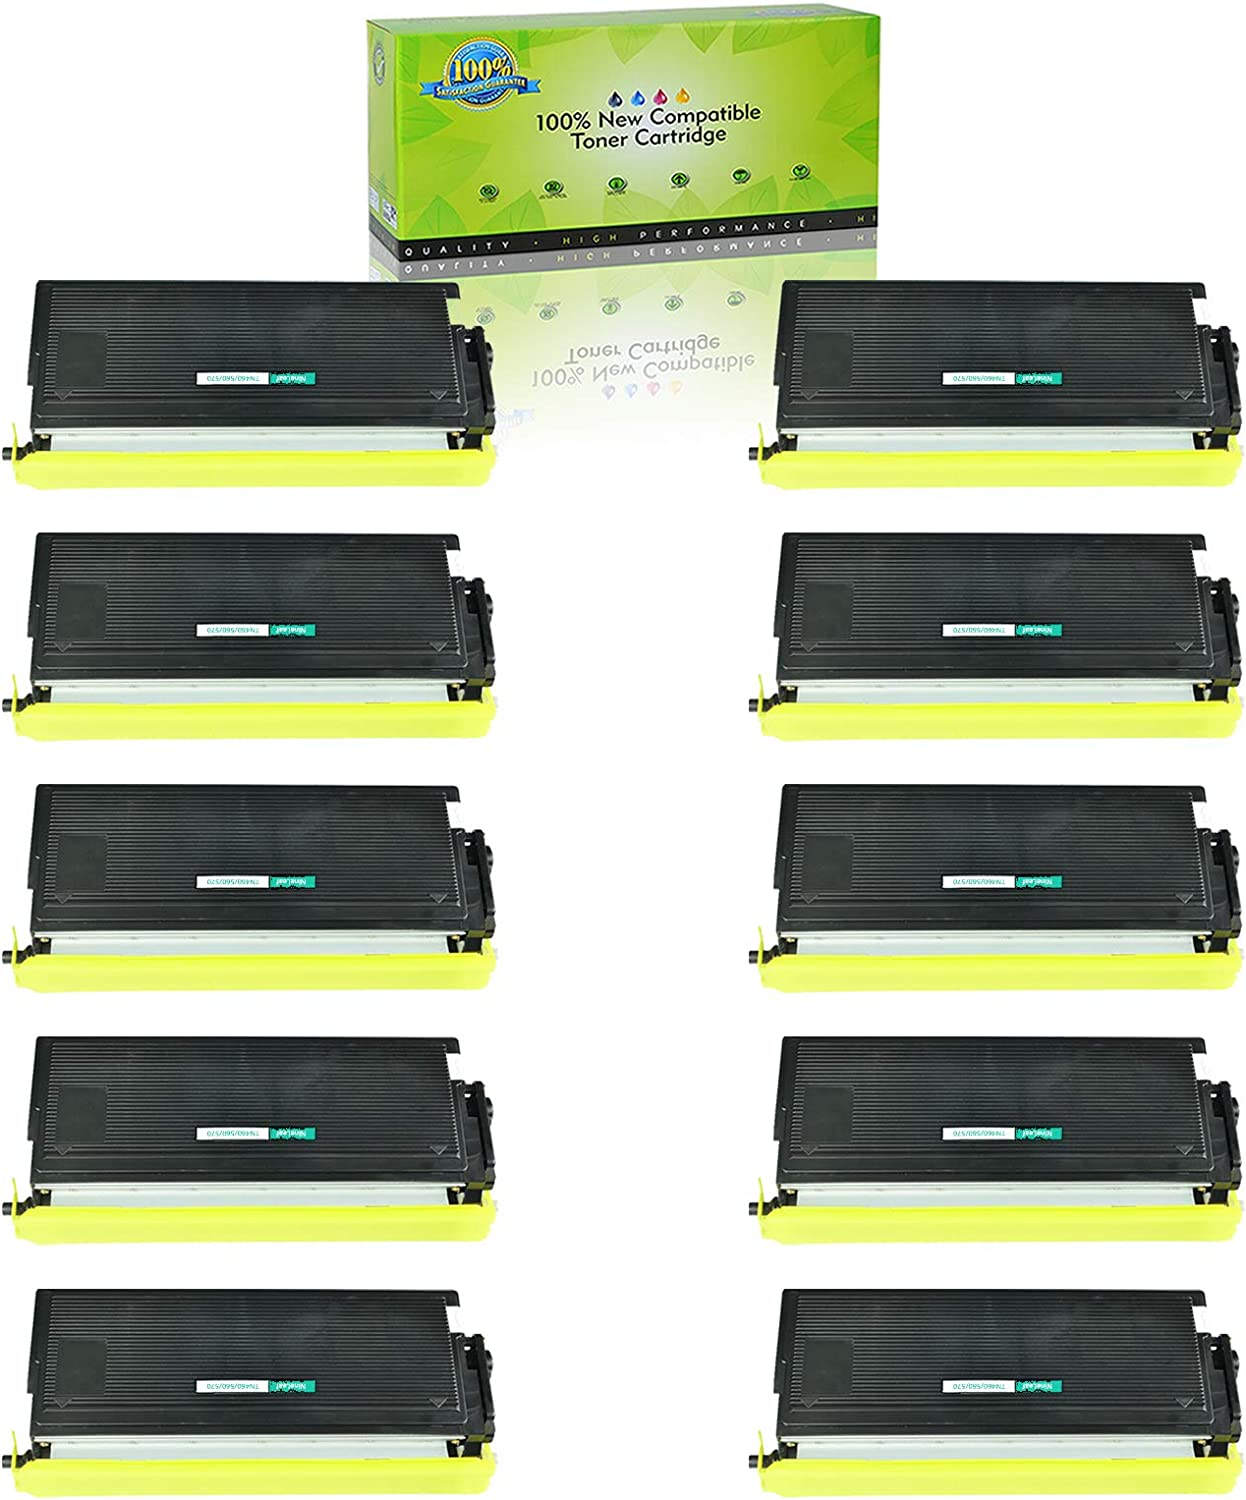 2 PK HIGH YIELD TONER CARTRIDGE for BROTHER TN560 TN-560 DCP-8020 8025D Printer